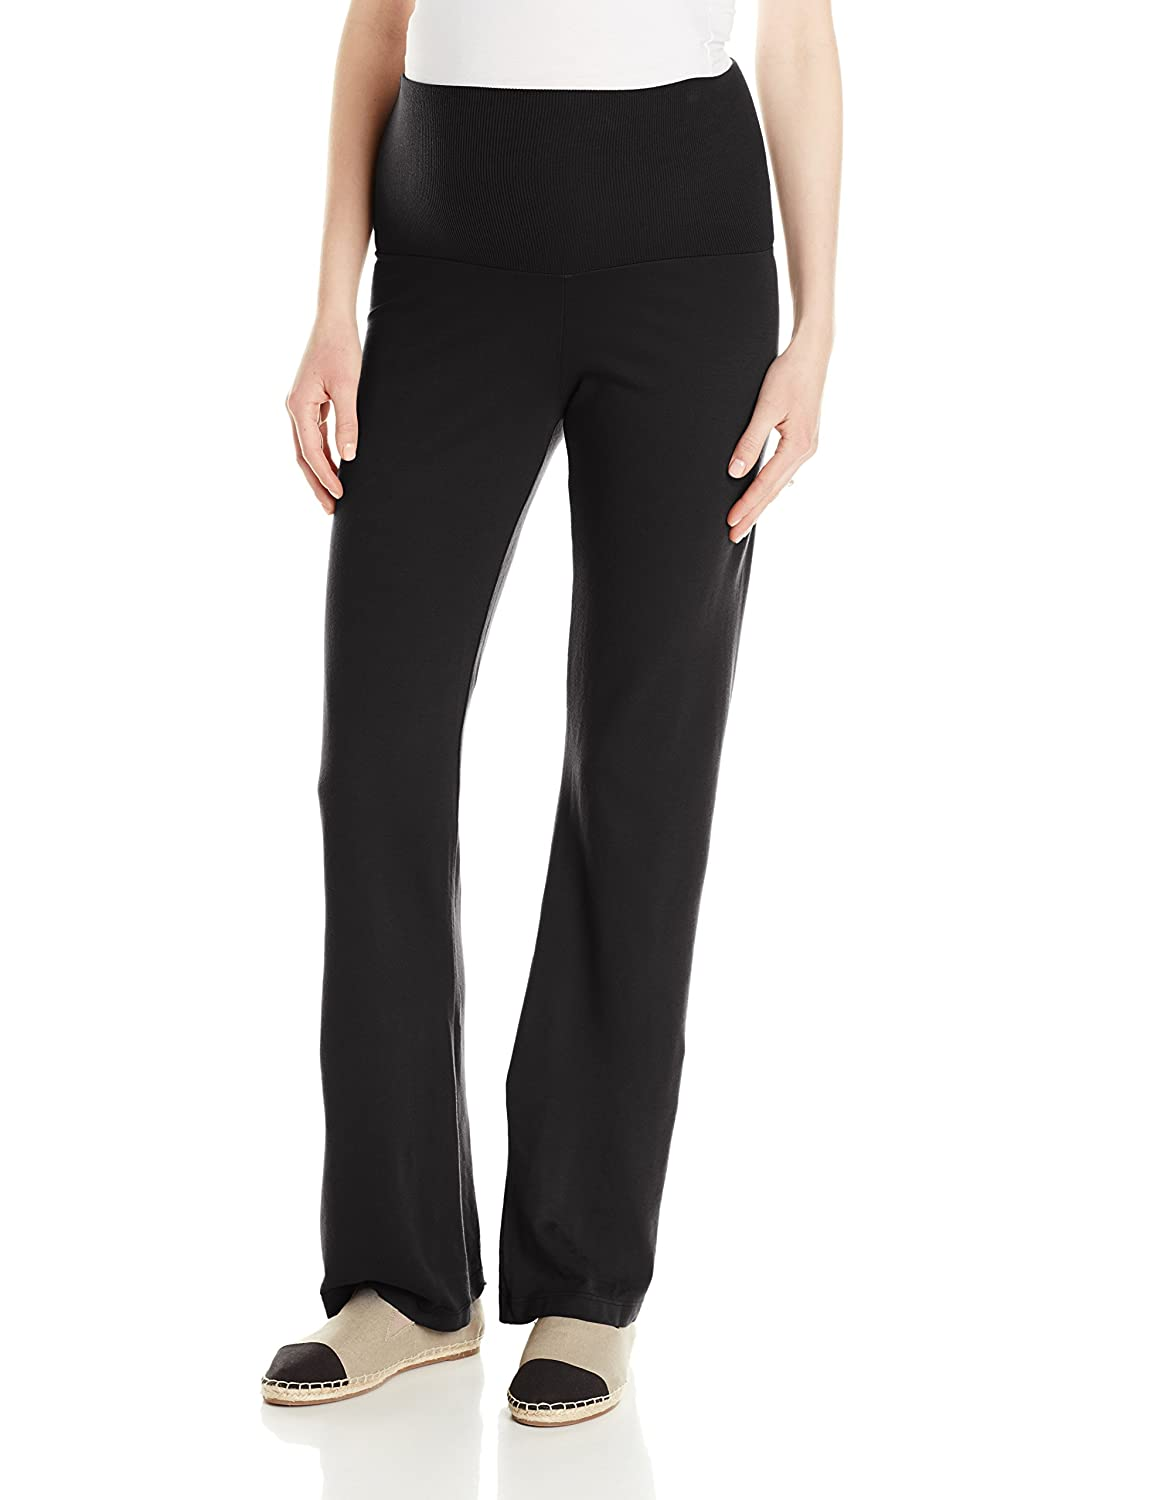 LA Made Women's Maternity Noah Pant Black Small LA Made Maternity MA-FT114